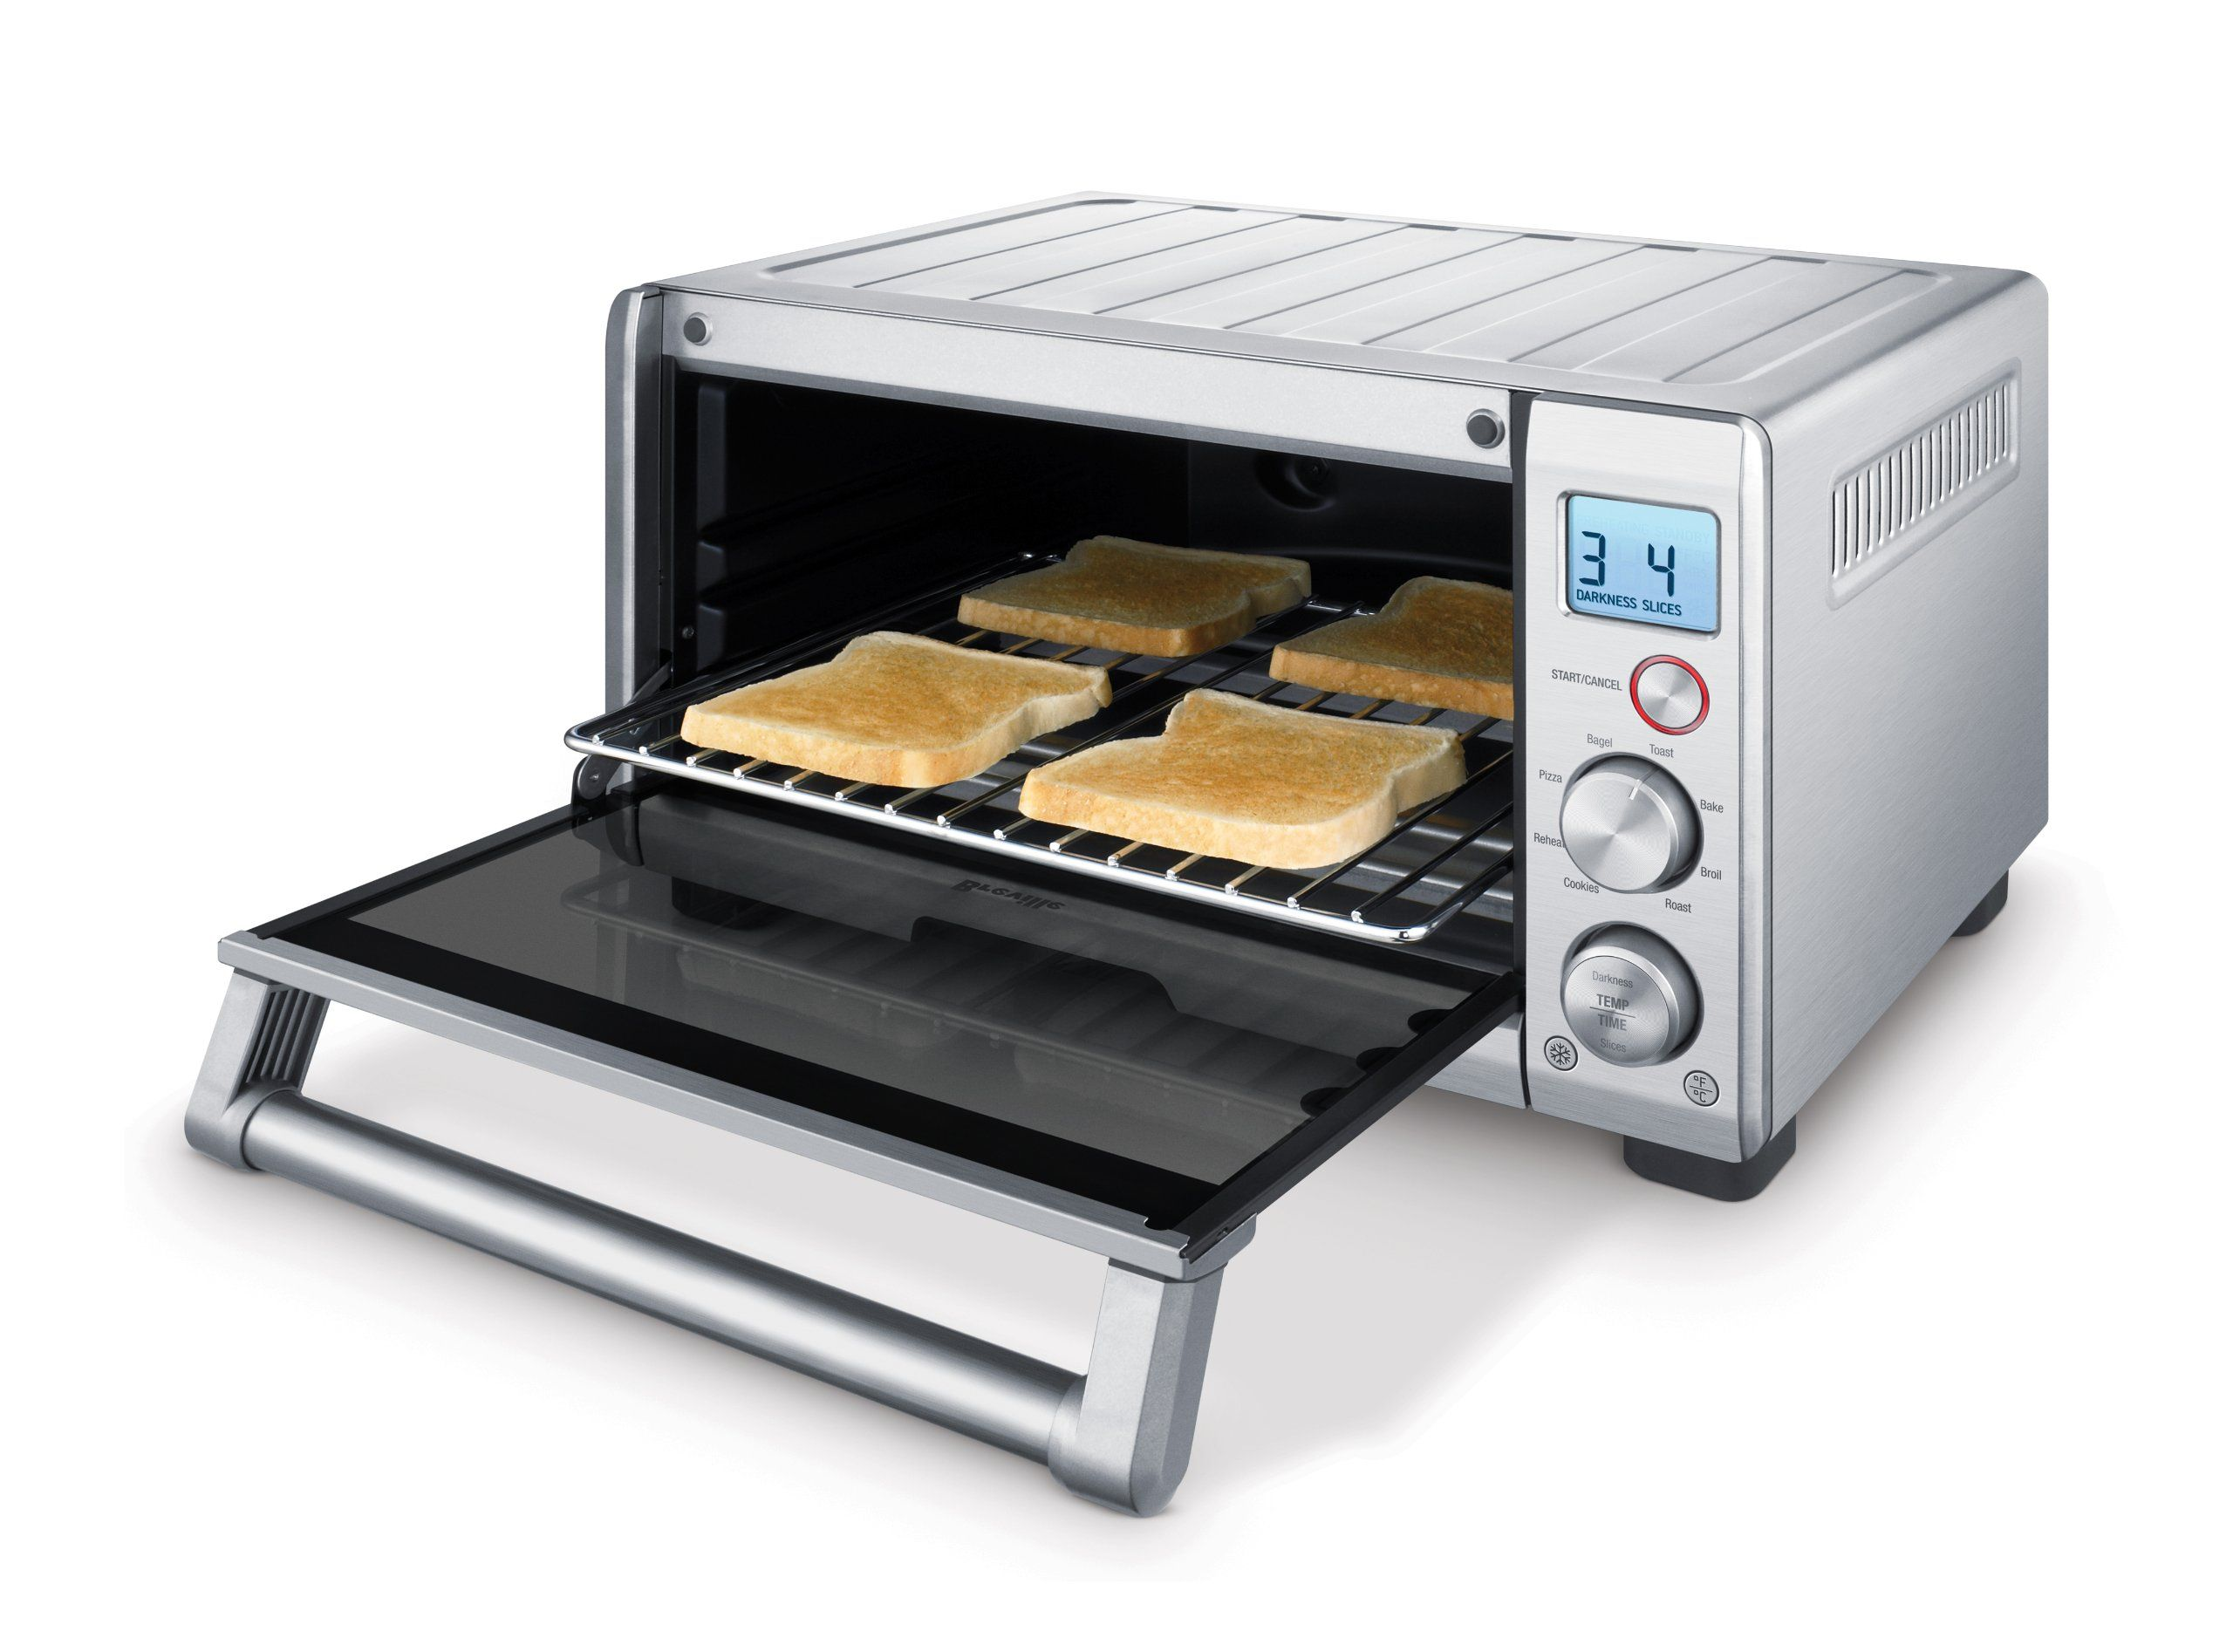 Breville Bov650xl The Compact Smart Oven Stainless Steel You